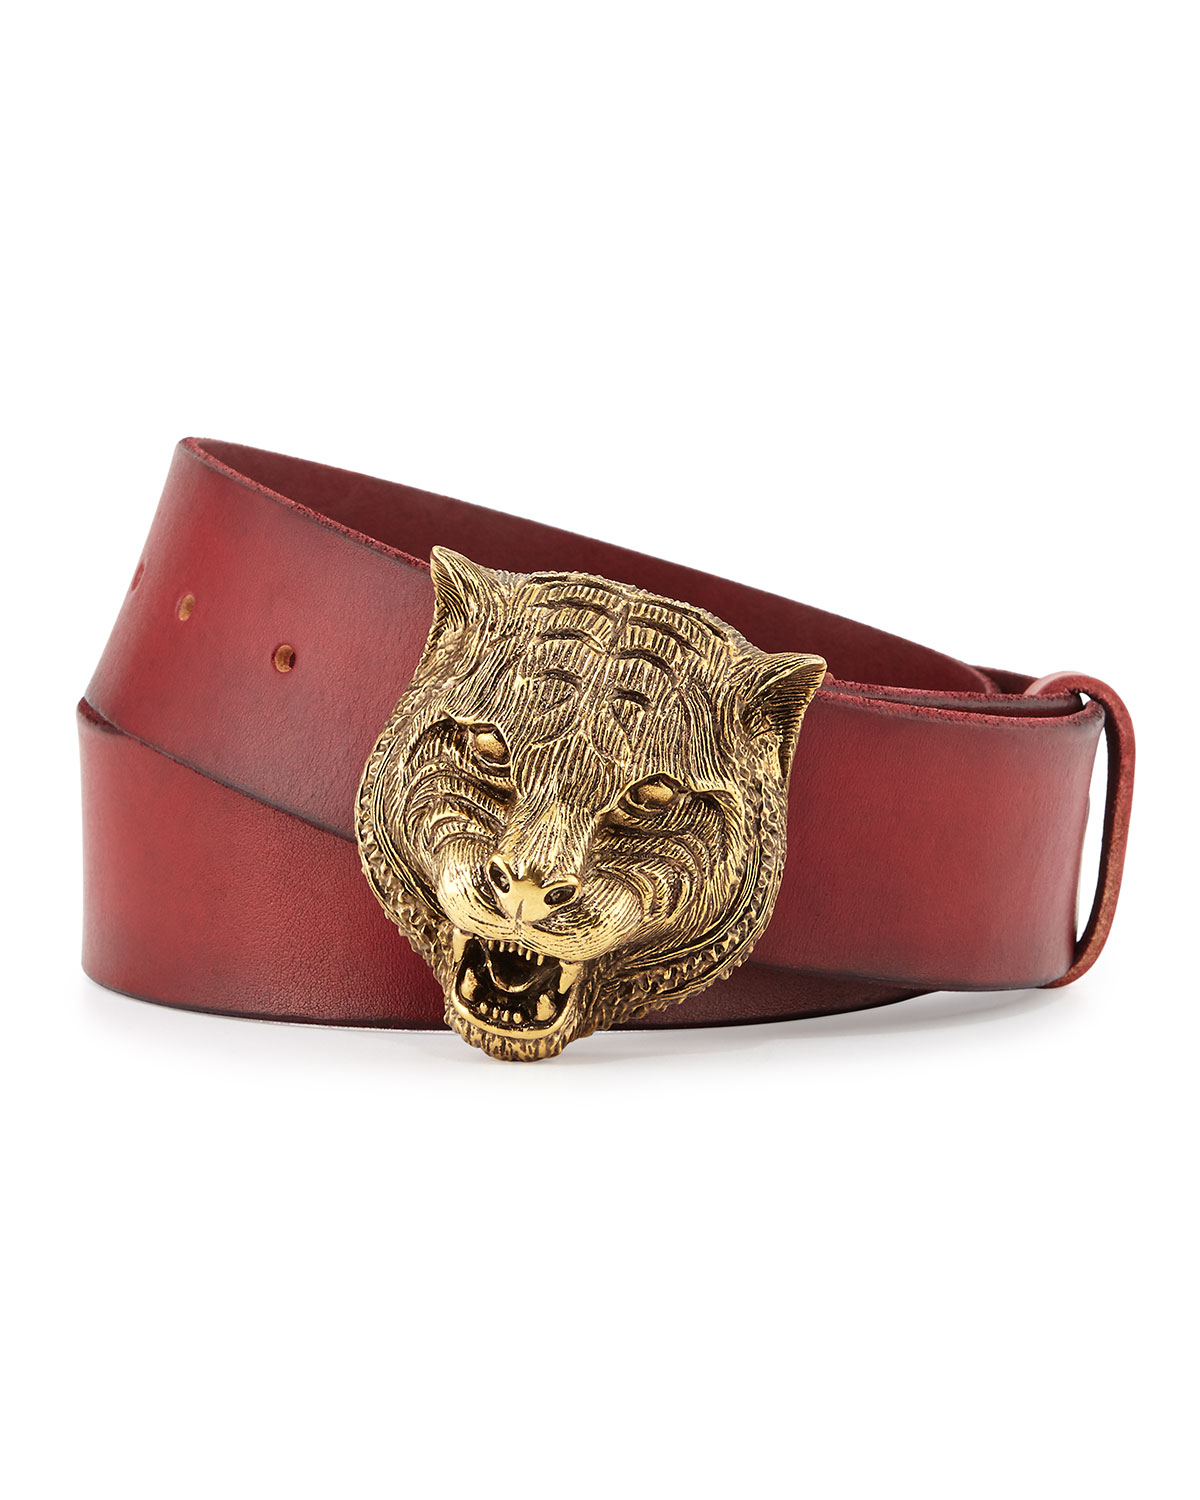 75d09bbdfed Gucci Men s Leather Belt with Tiger Buckle